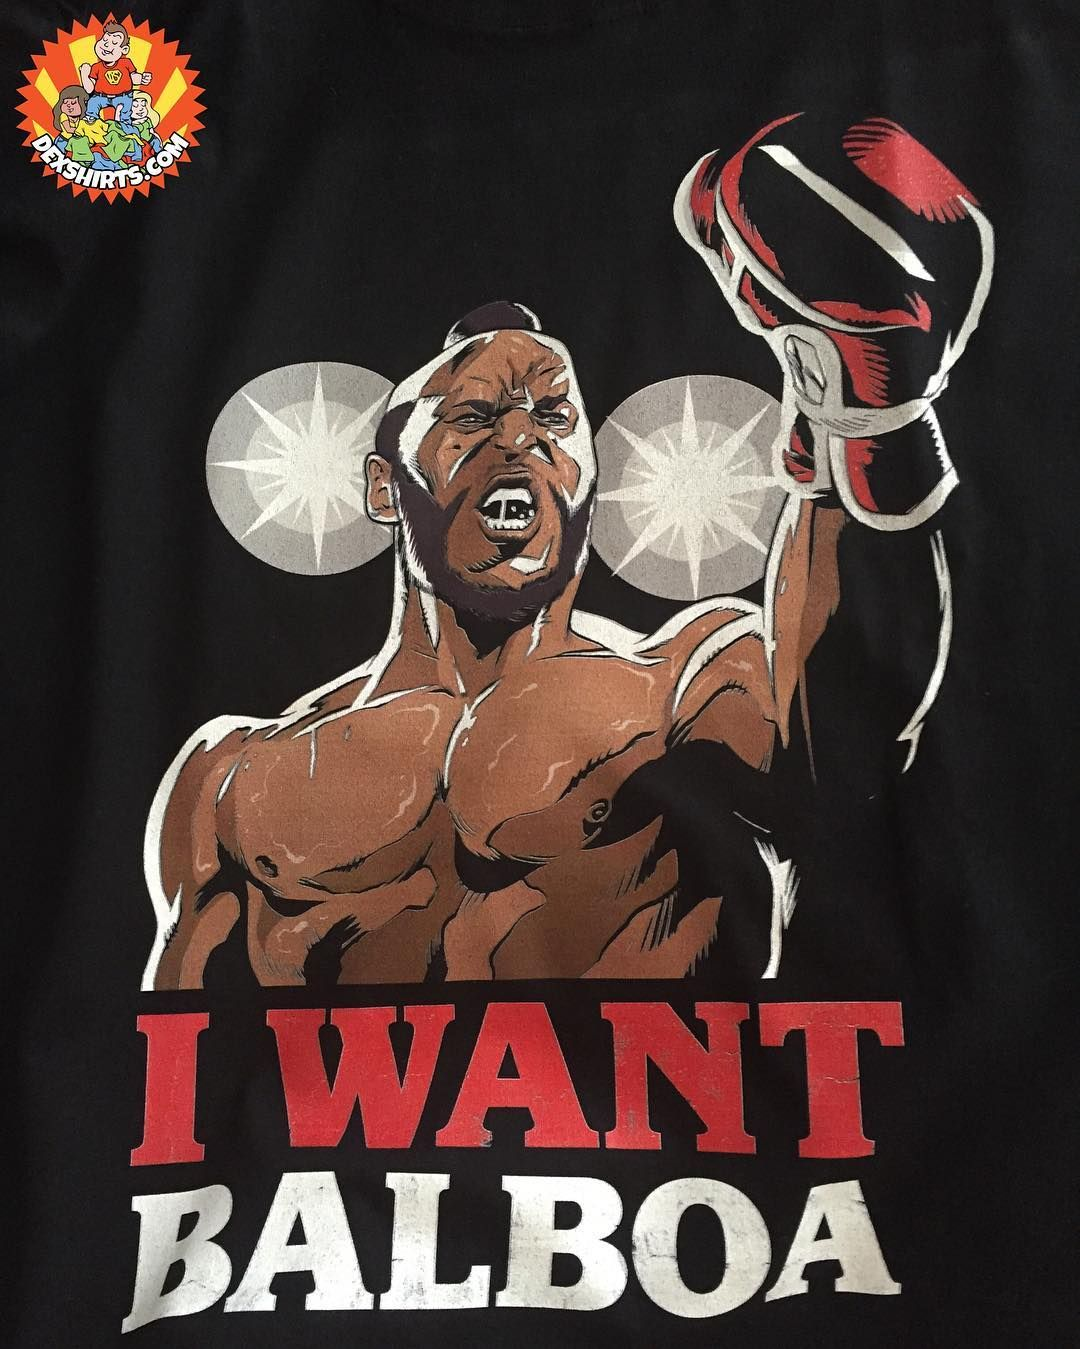 You hear me old man? I WANT BALBOA! Get our Clubber Lang tee